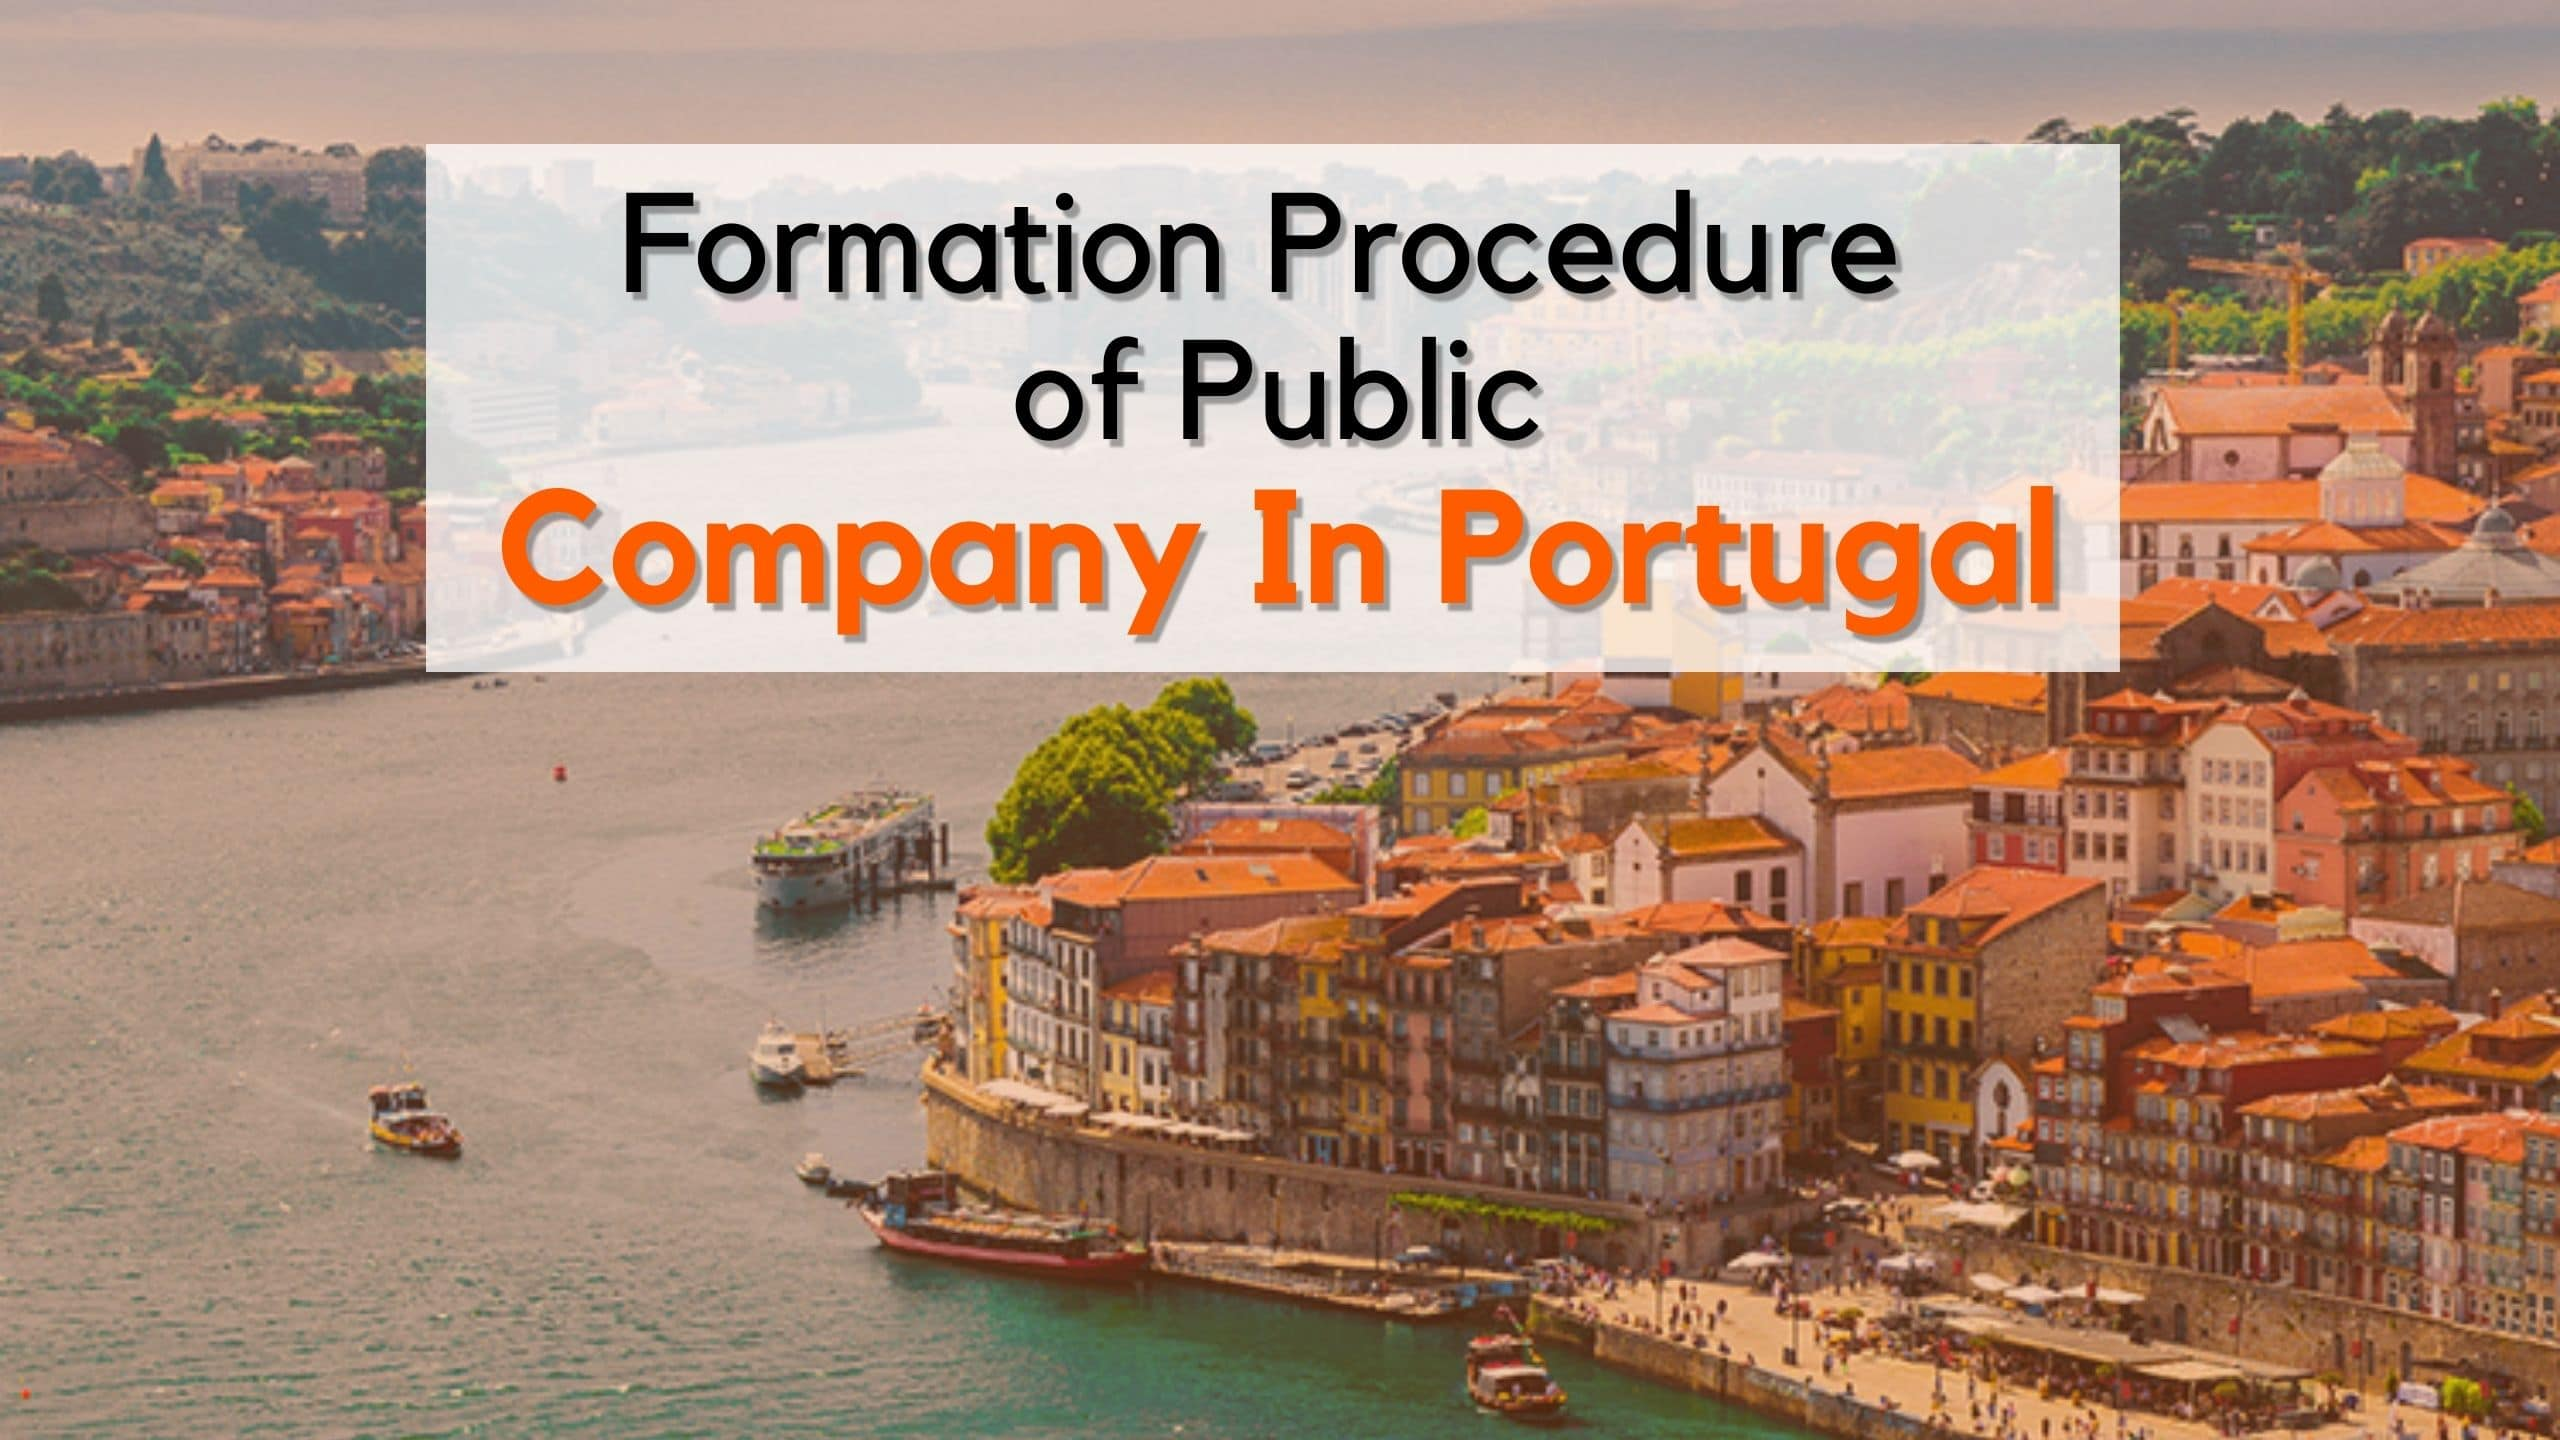 Formation Procedure of Public Company in Portugal by sfconsultingbd